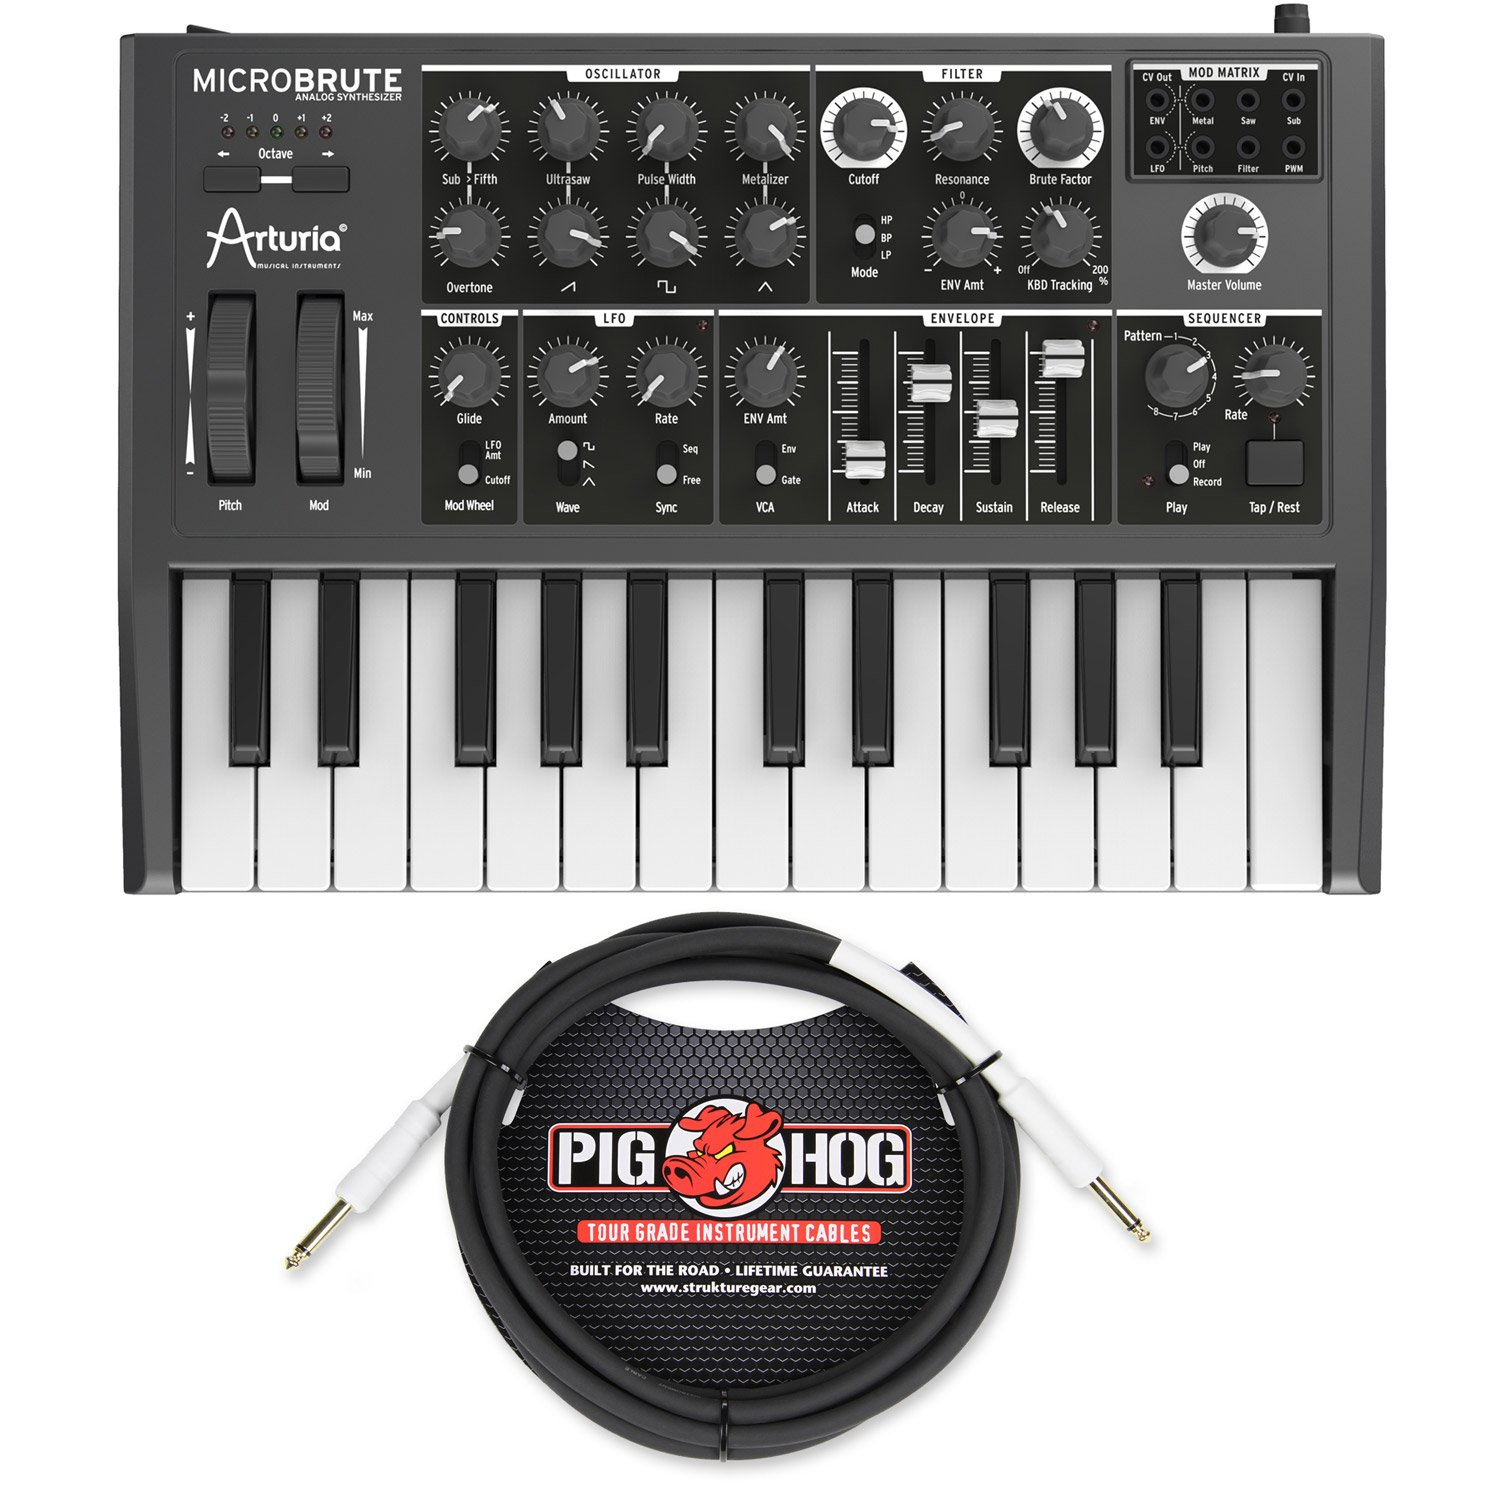 Arturia MICROBRUTE Analog Synthesizer w/ Pig Hog PH10 Instrument Cable - Bundle by Arturia